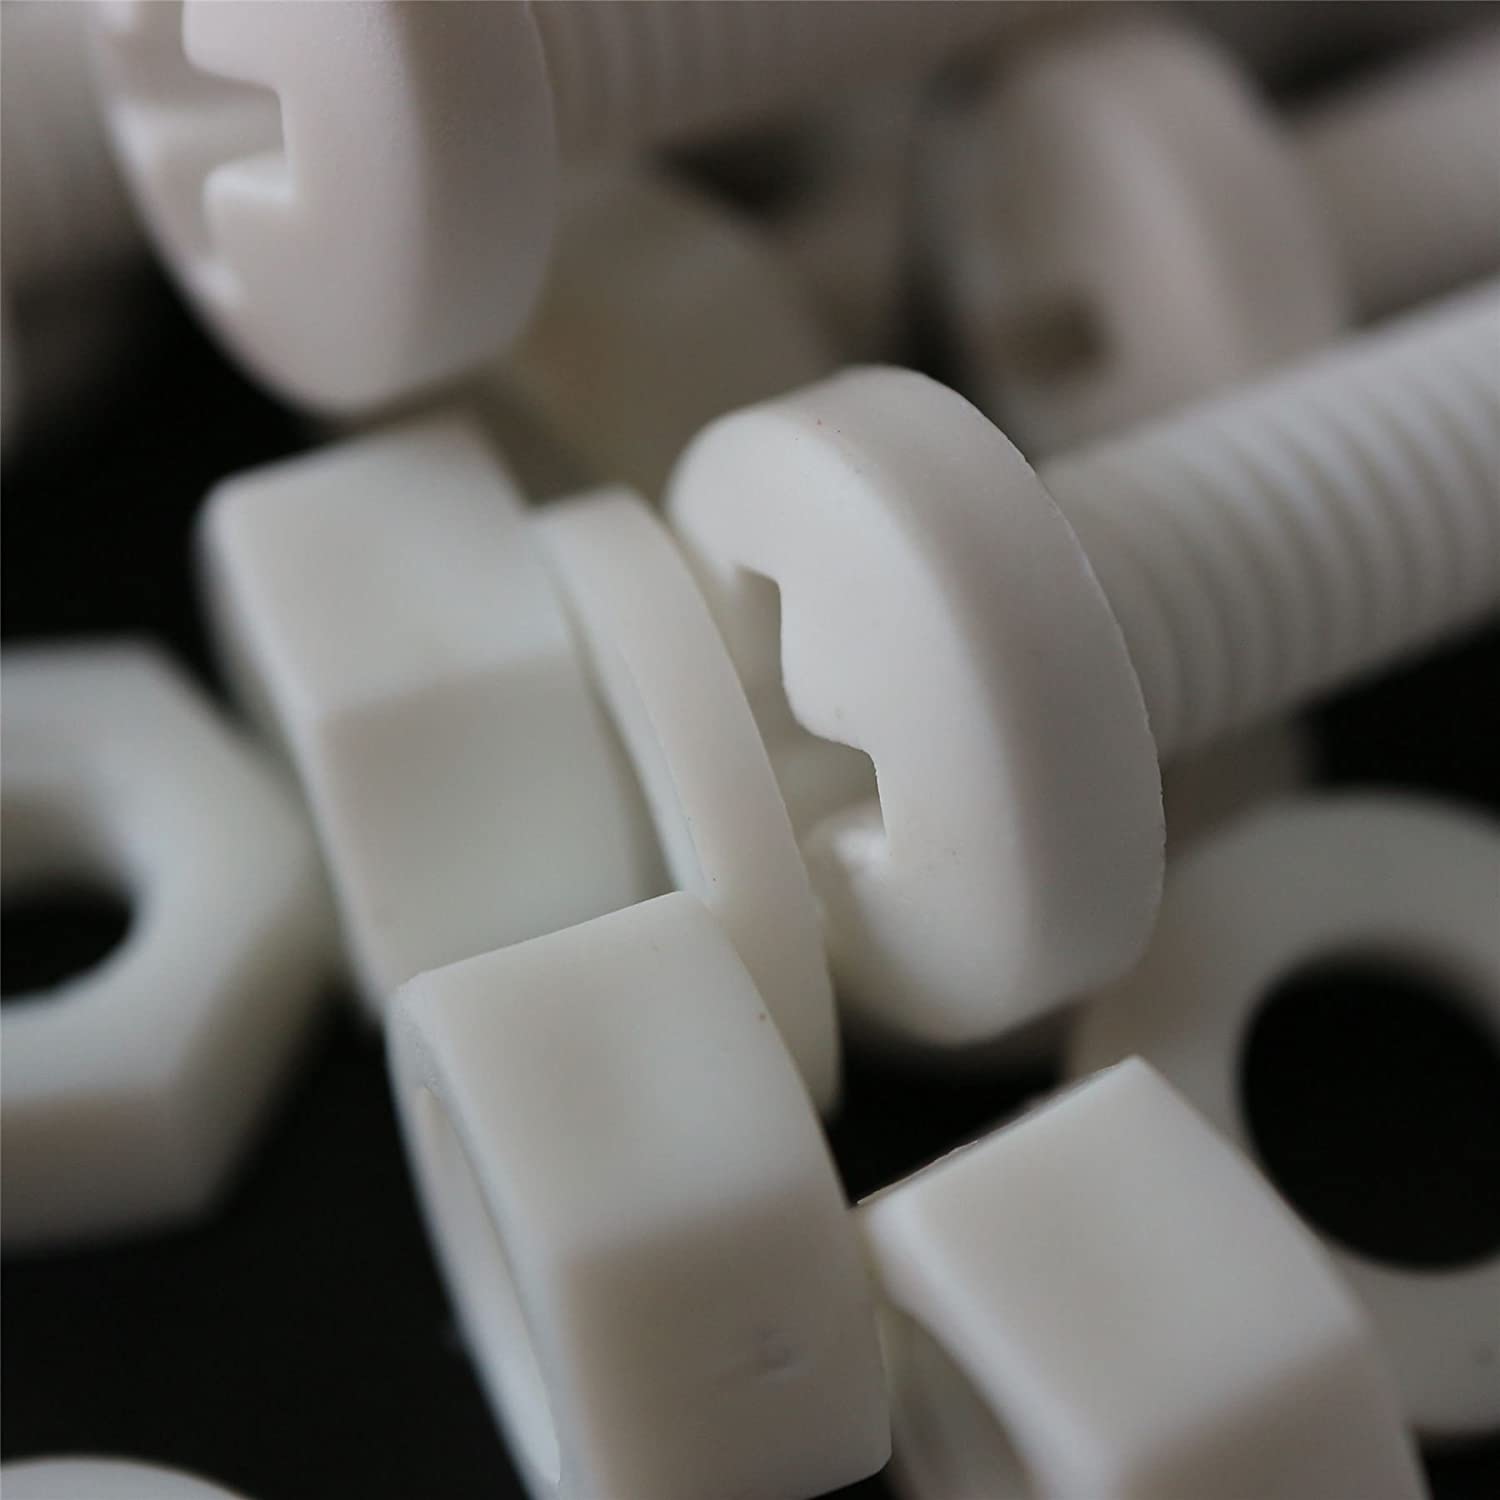 Plastic Nuts and Bolts Water Resistant Strong. Acrylic Electrical Insulator Washers 20 x White Philips Pan Head Screws Polypropylene PP Anti-Corrosion Chemical Resistant M6 x 60mm